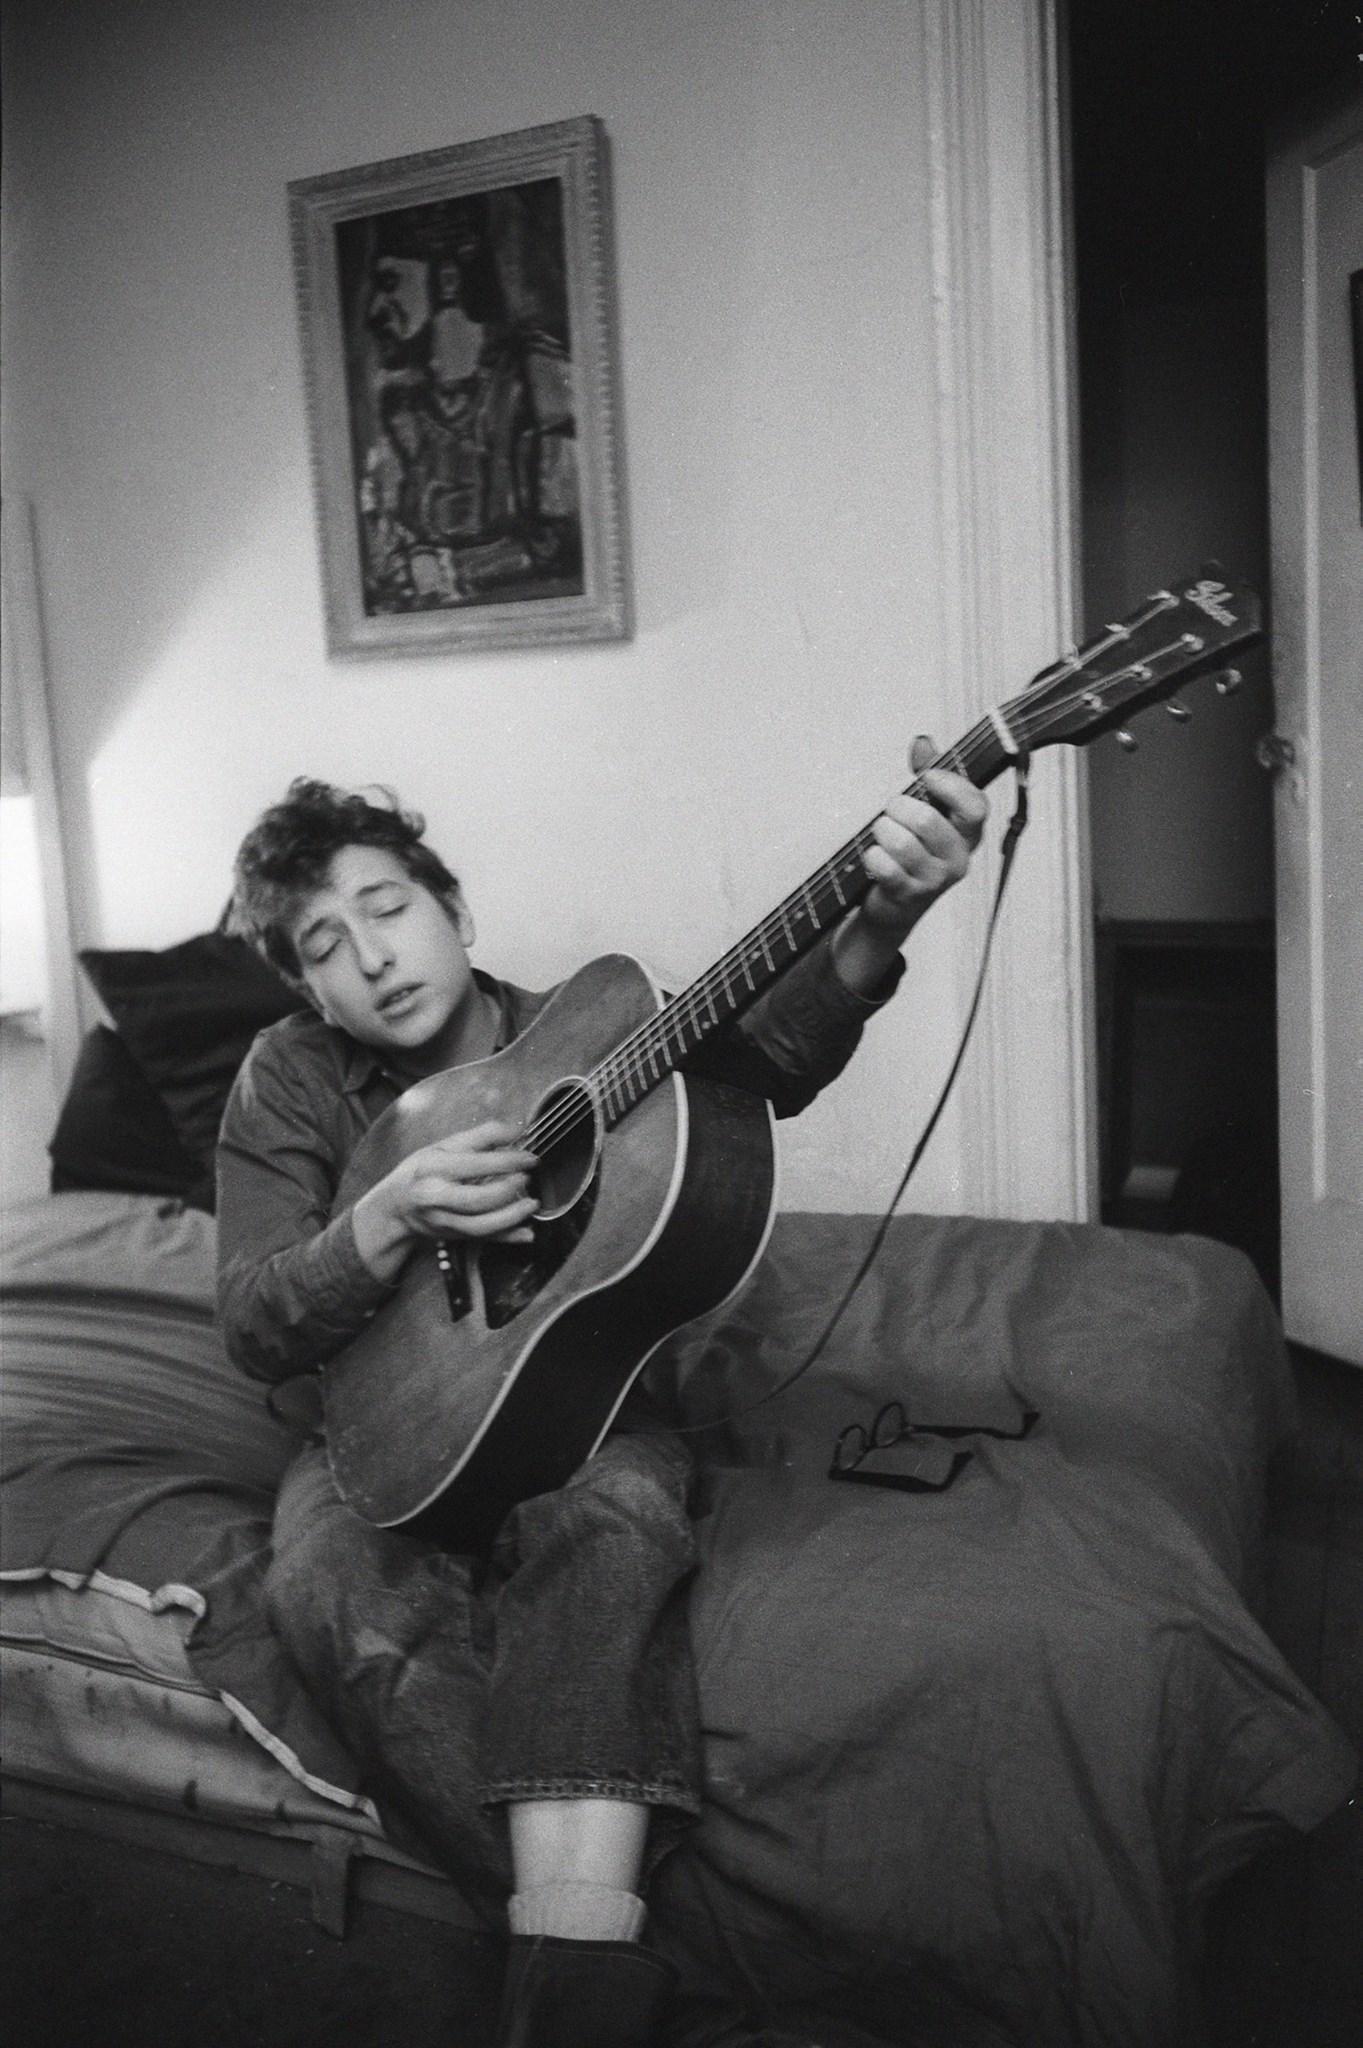 Bob Dylan playing guitar on his bed in his apartment, 161 W 4th St, Greenwich Village, NYC, 1961 (c) Ted Russell / Govinda Gallery